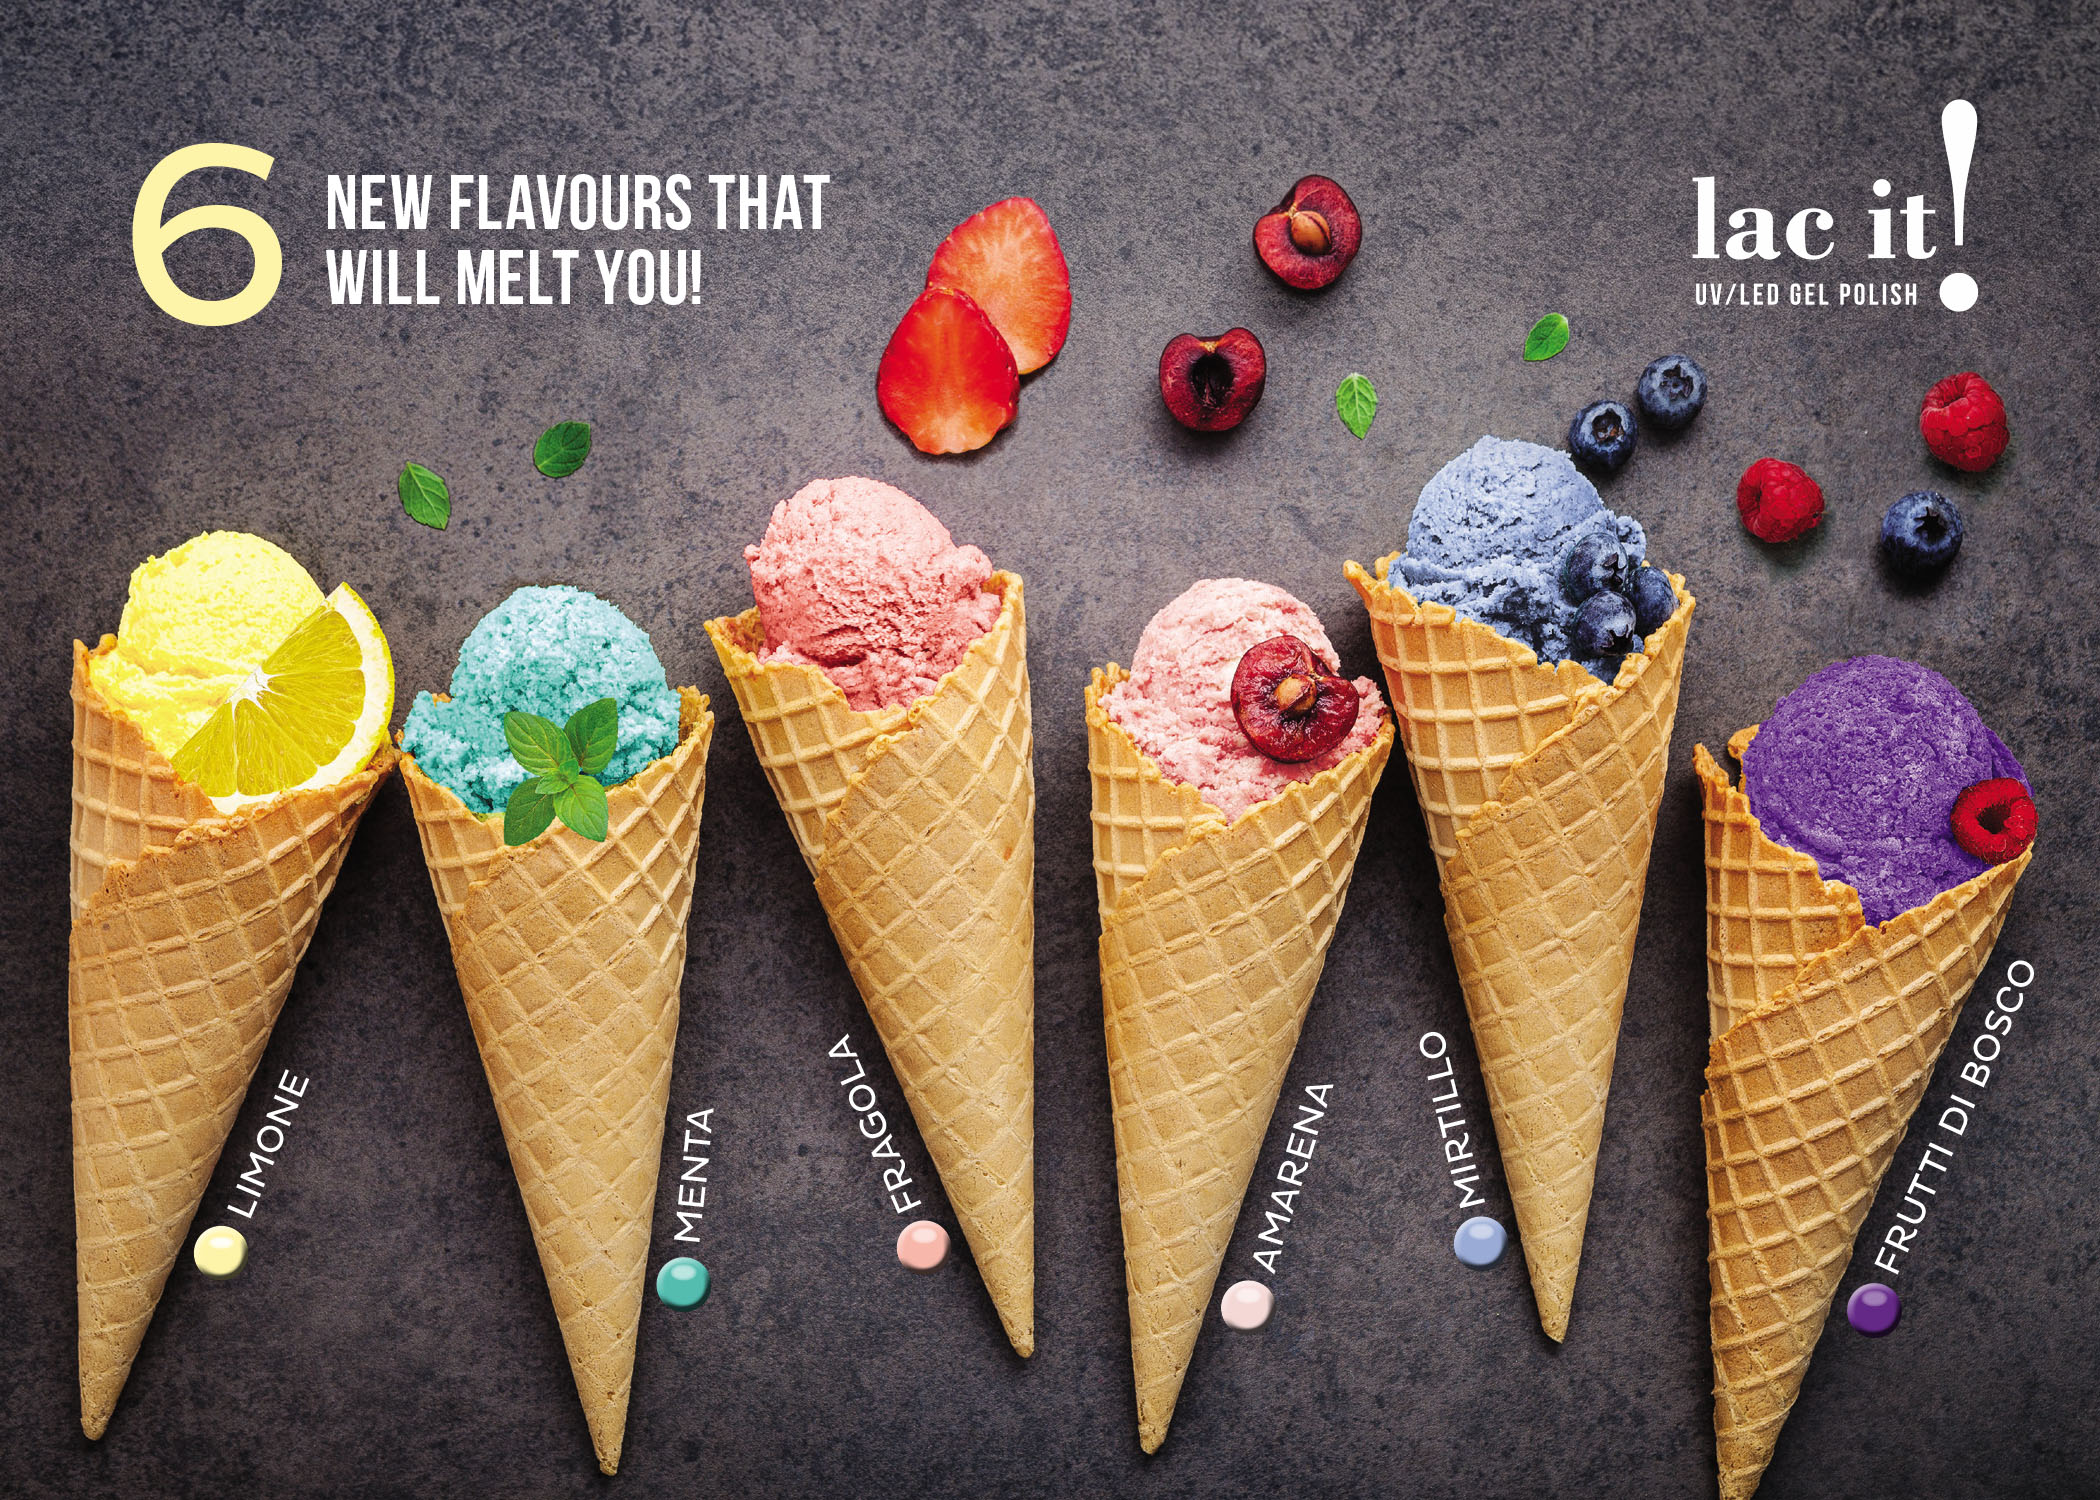 lac it! Gelato Collection